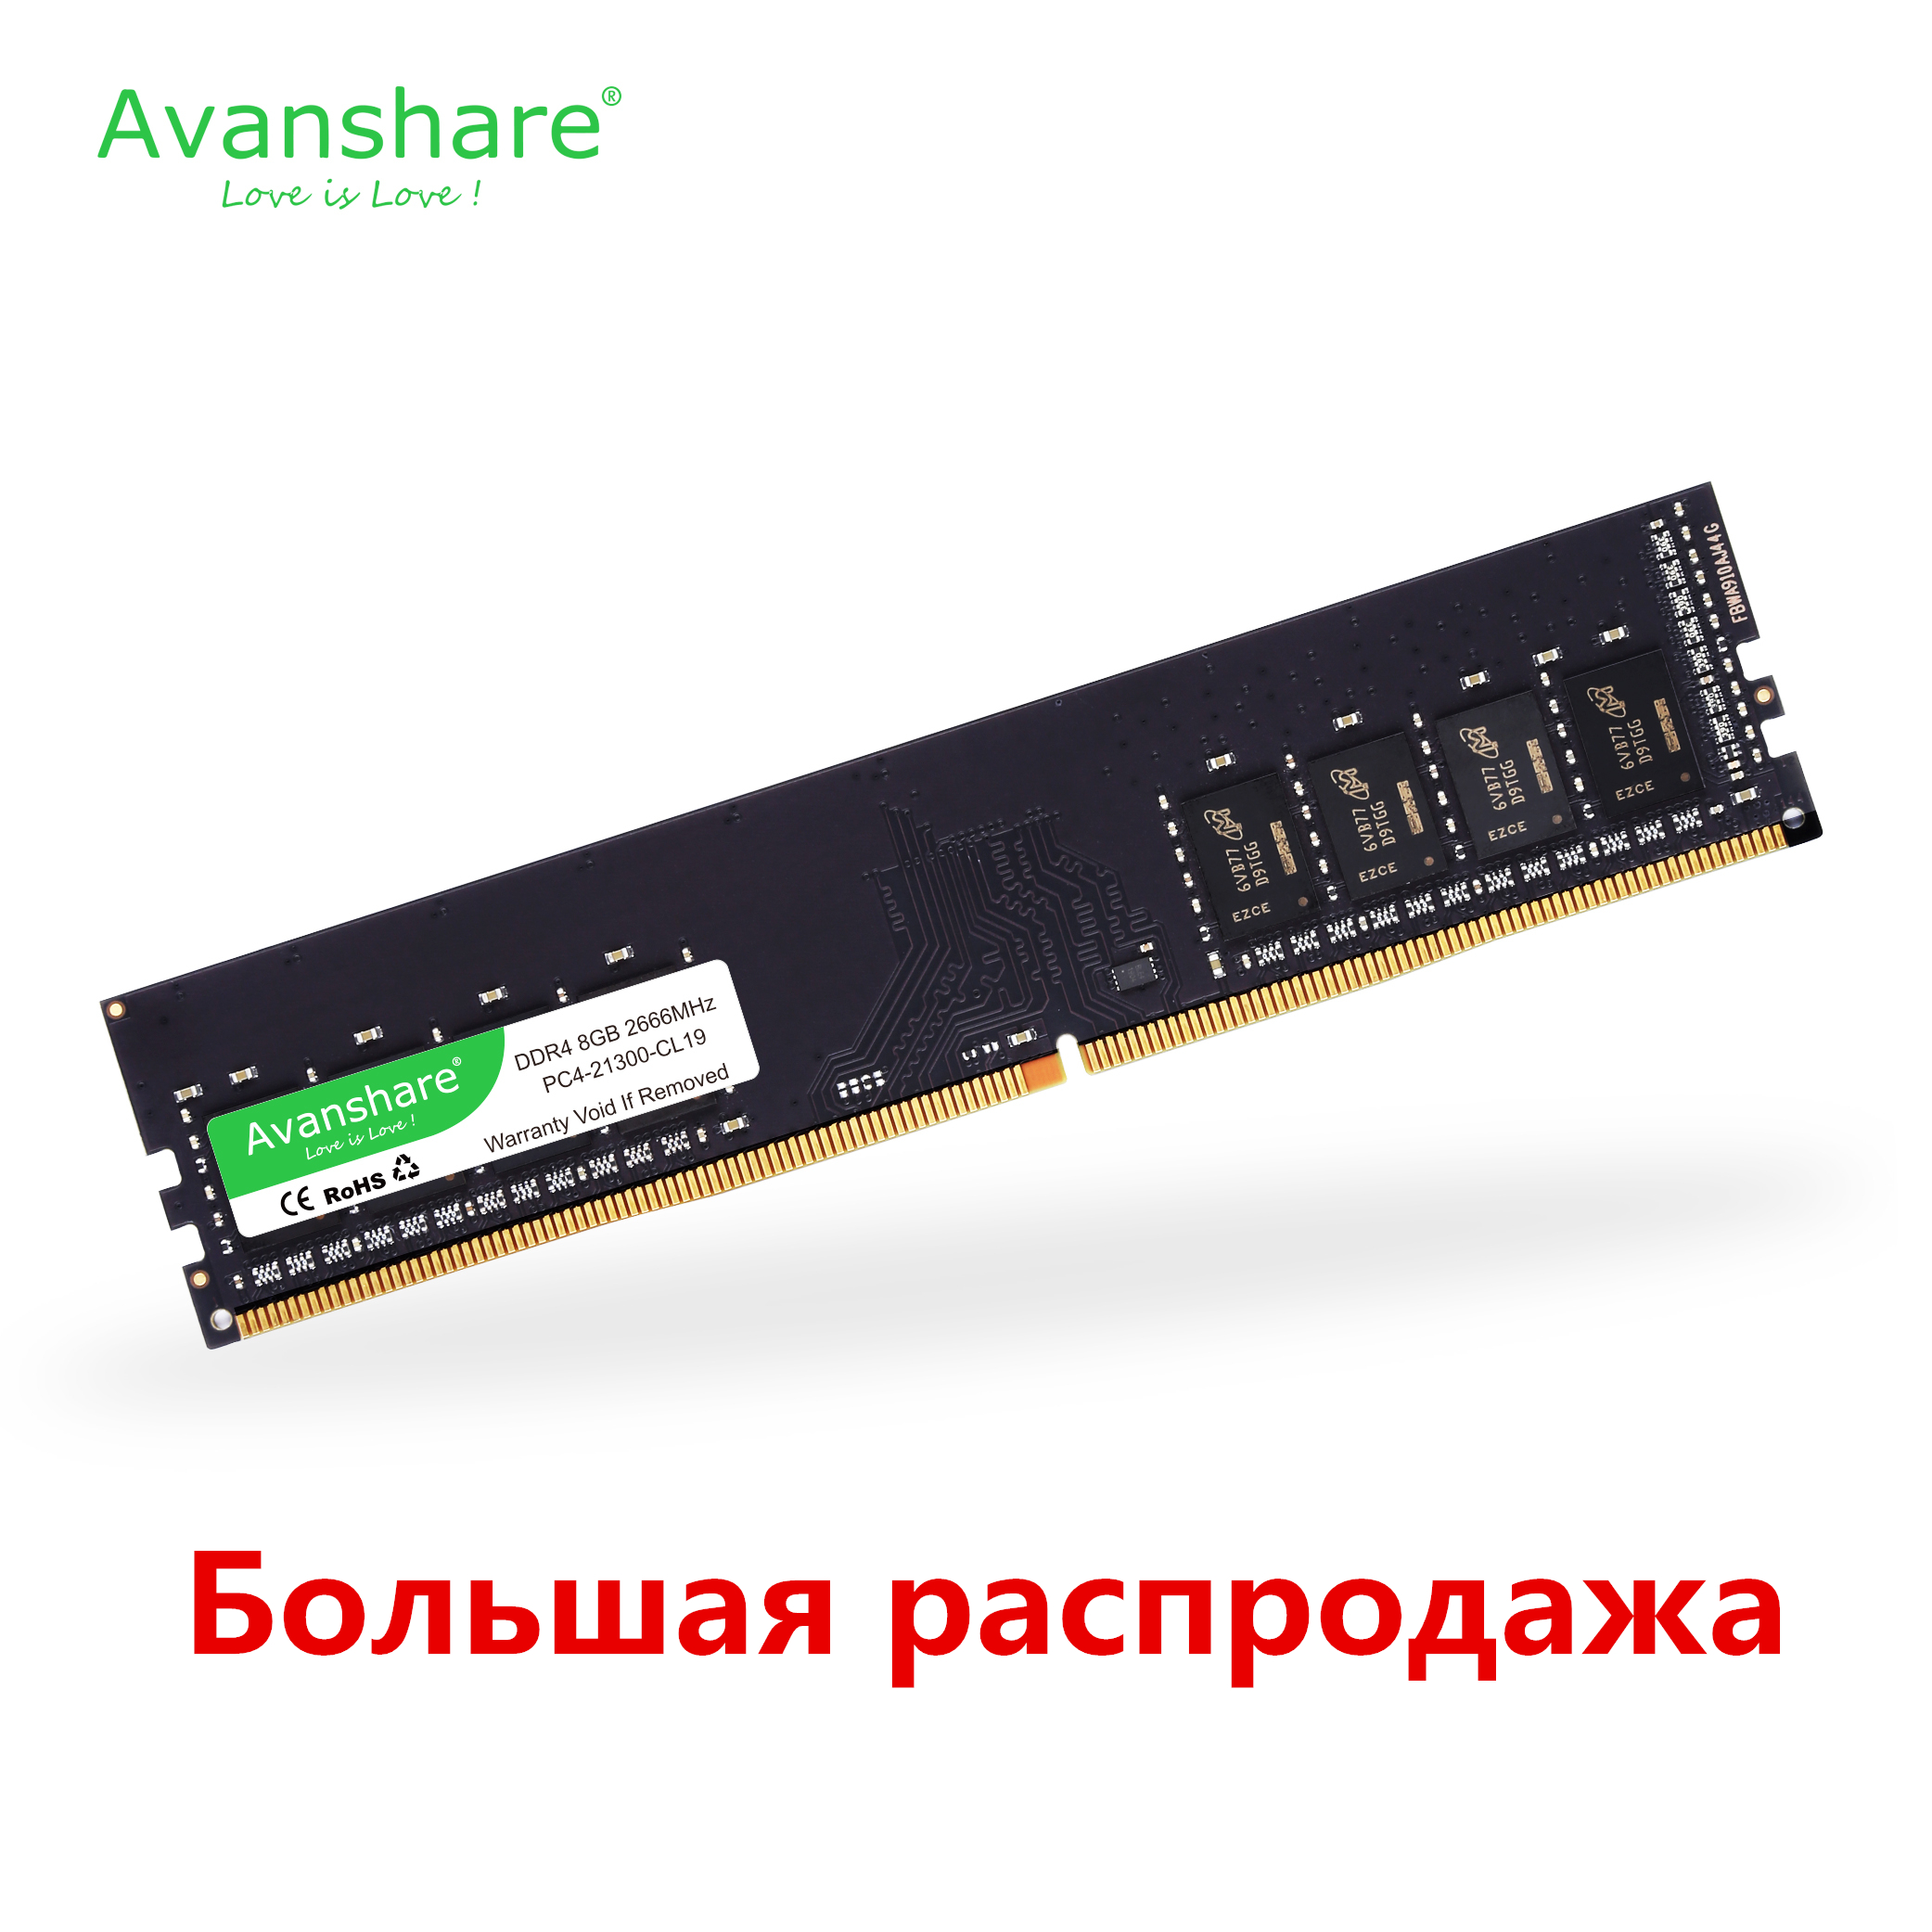 DDR4 RAM 4GB/8GB/16GB 2400MHZ/2666MHZ PC DIMM 288pin Desktop Memory Support motherboard ddr4 memory by Avanshare image